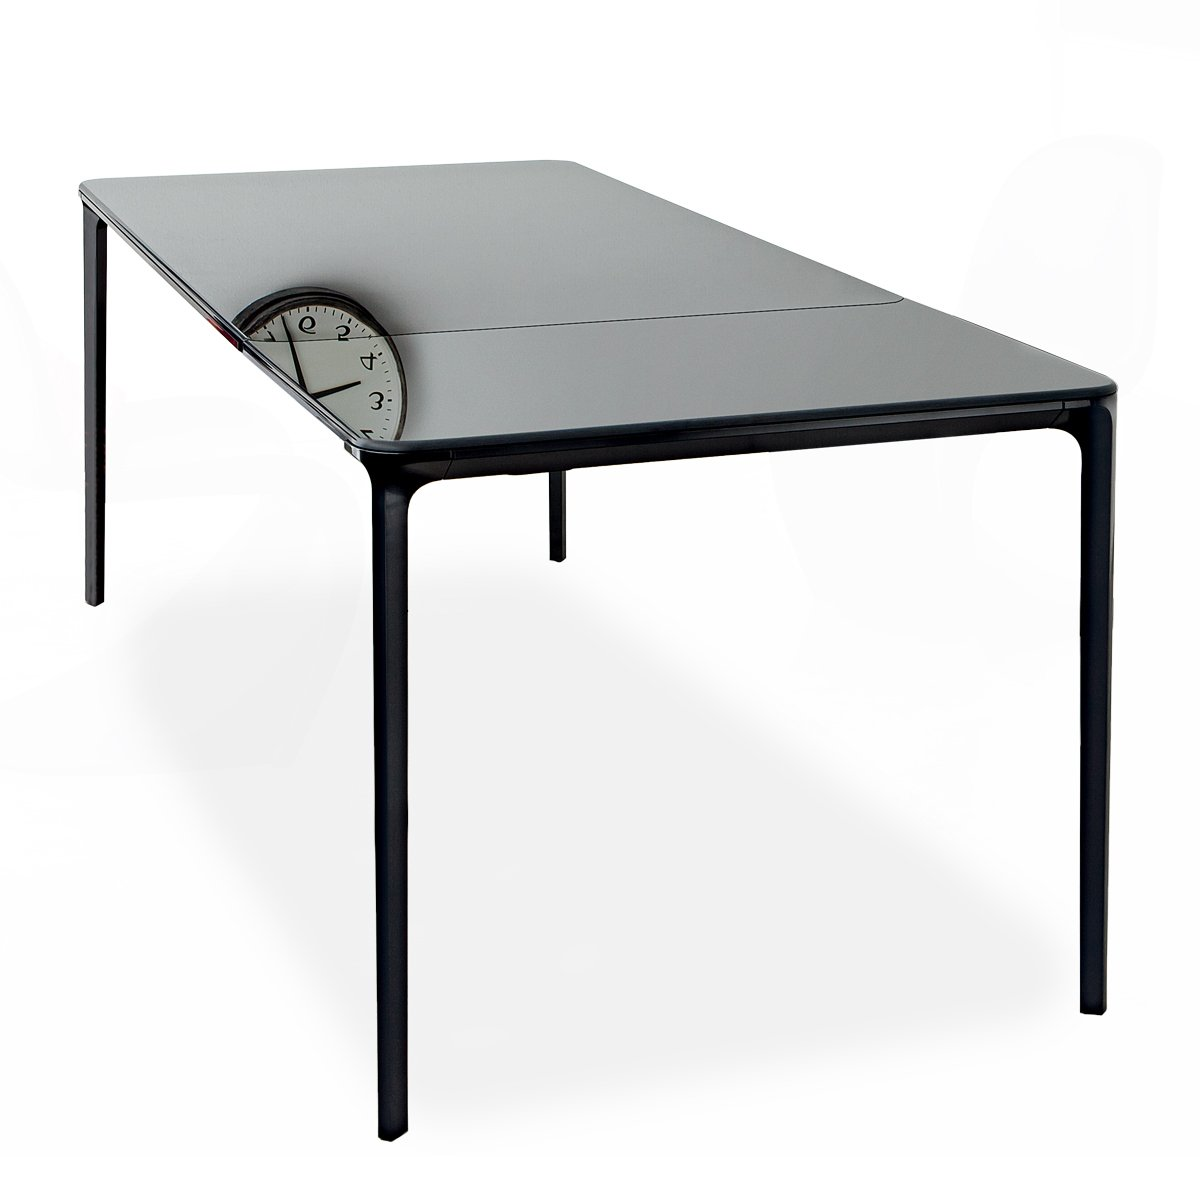 Table extensible light pieds noirs meubles et atmosph re - Meuble table extensible ...